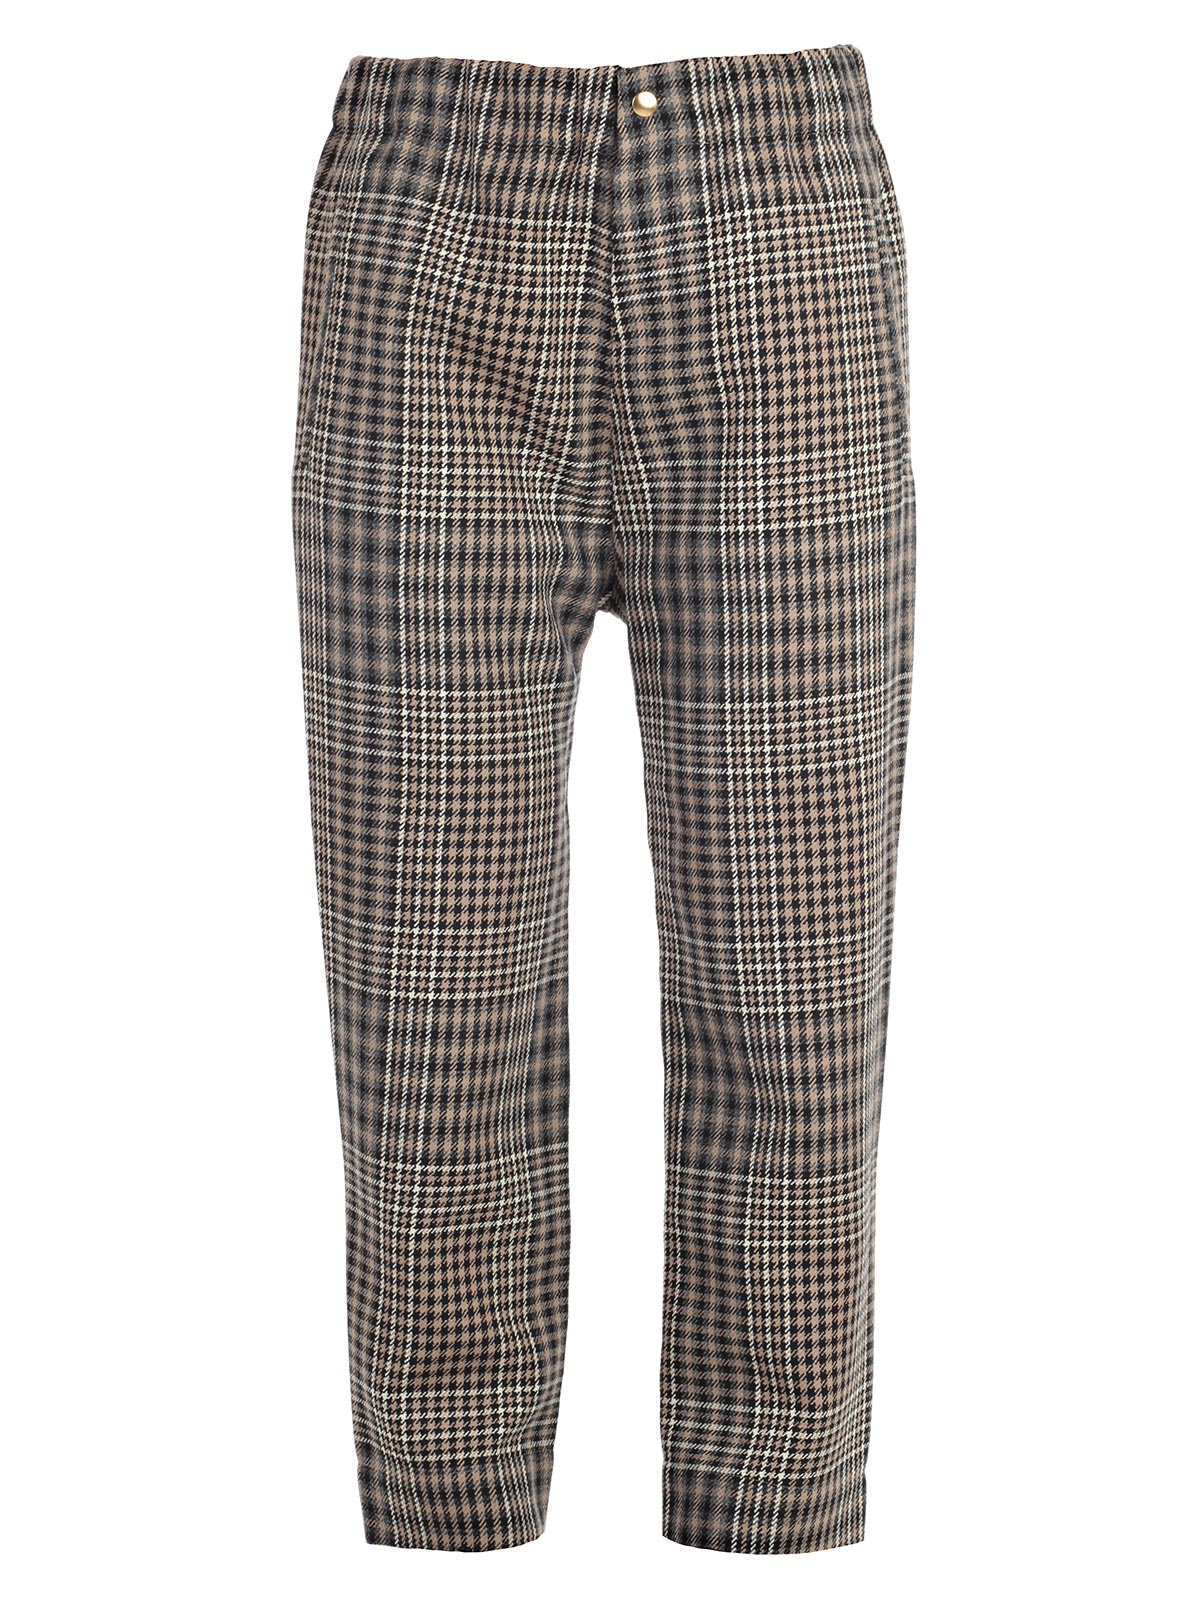 Picture of SOFIE D'HOORE TROUSERS PANTALONE MADRAS